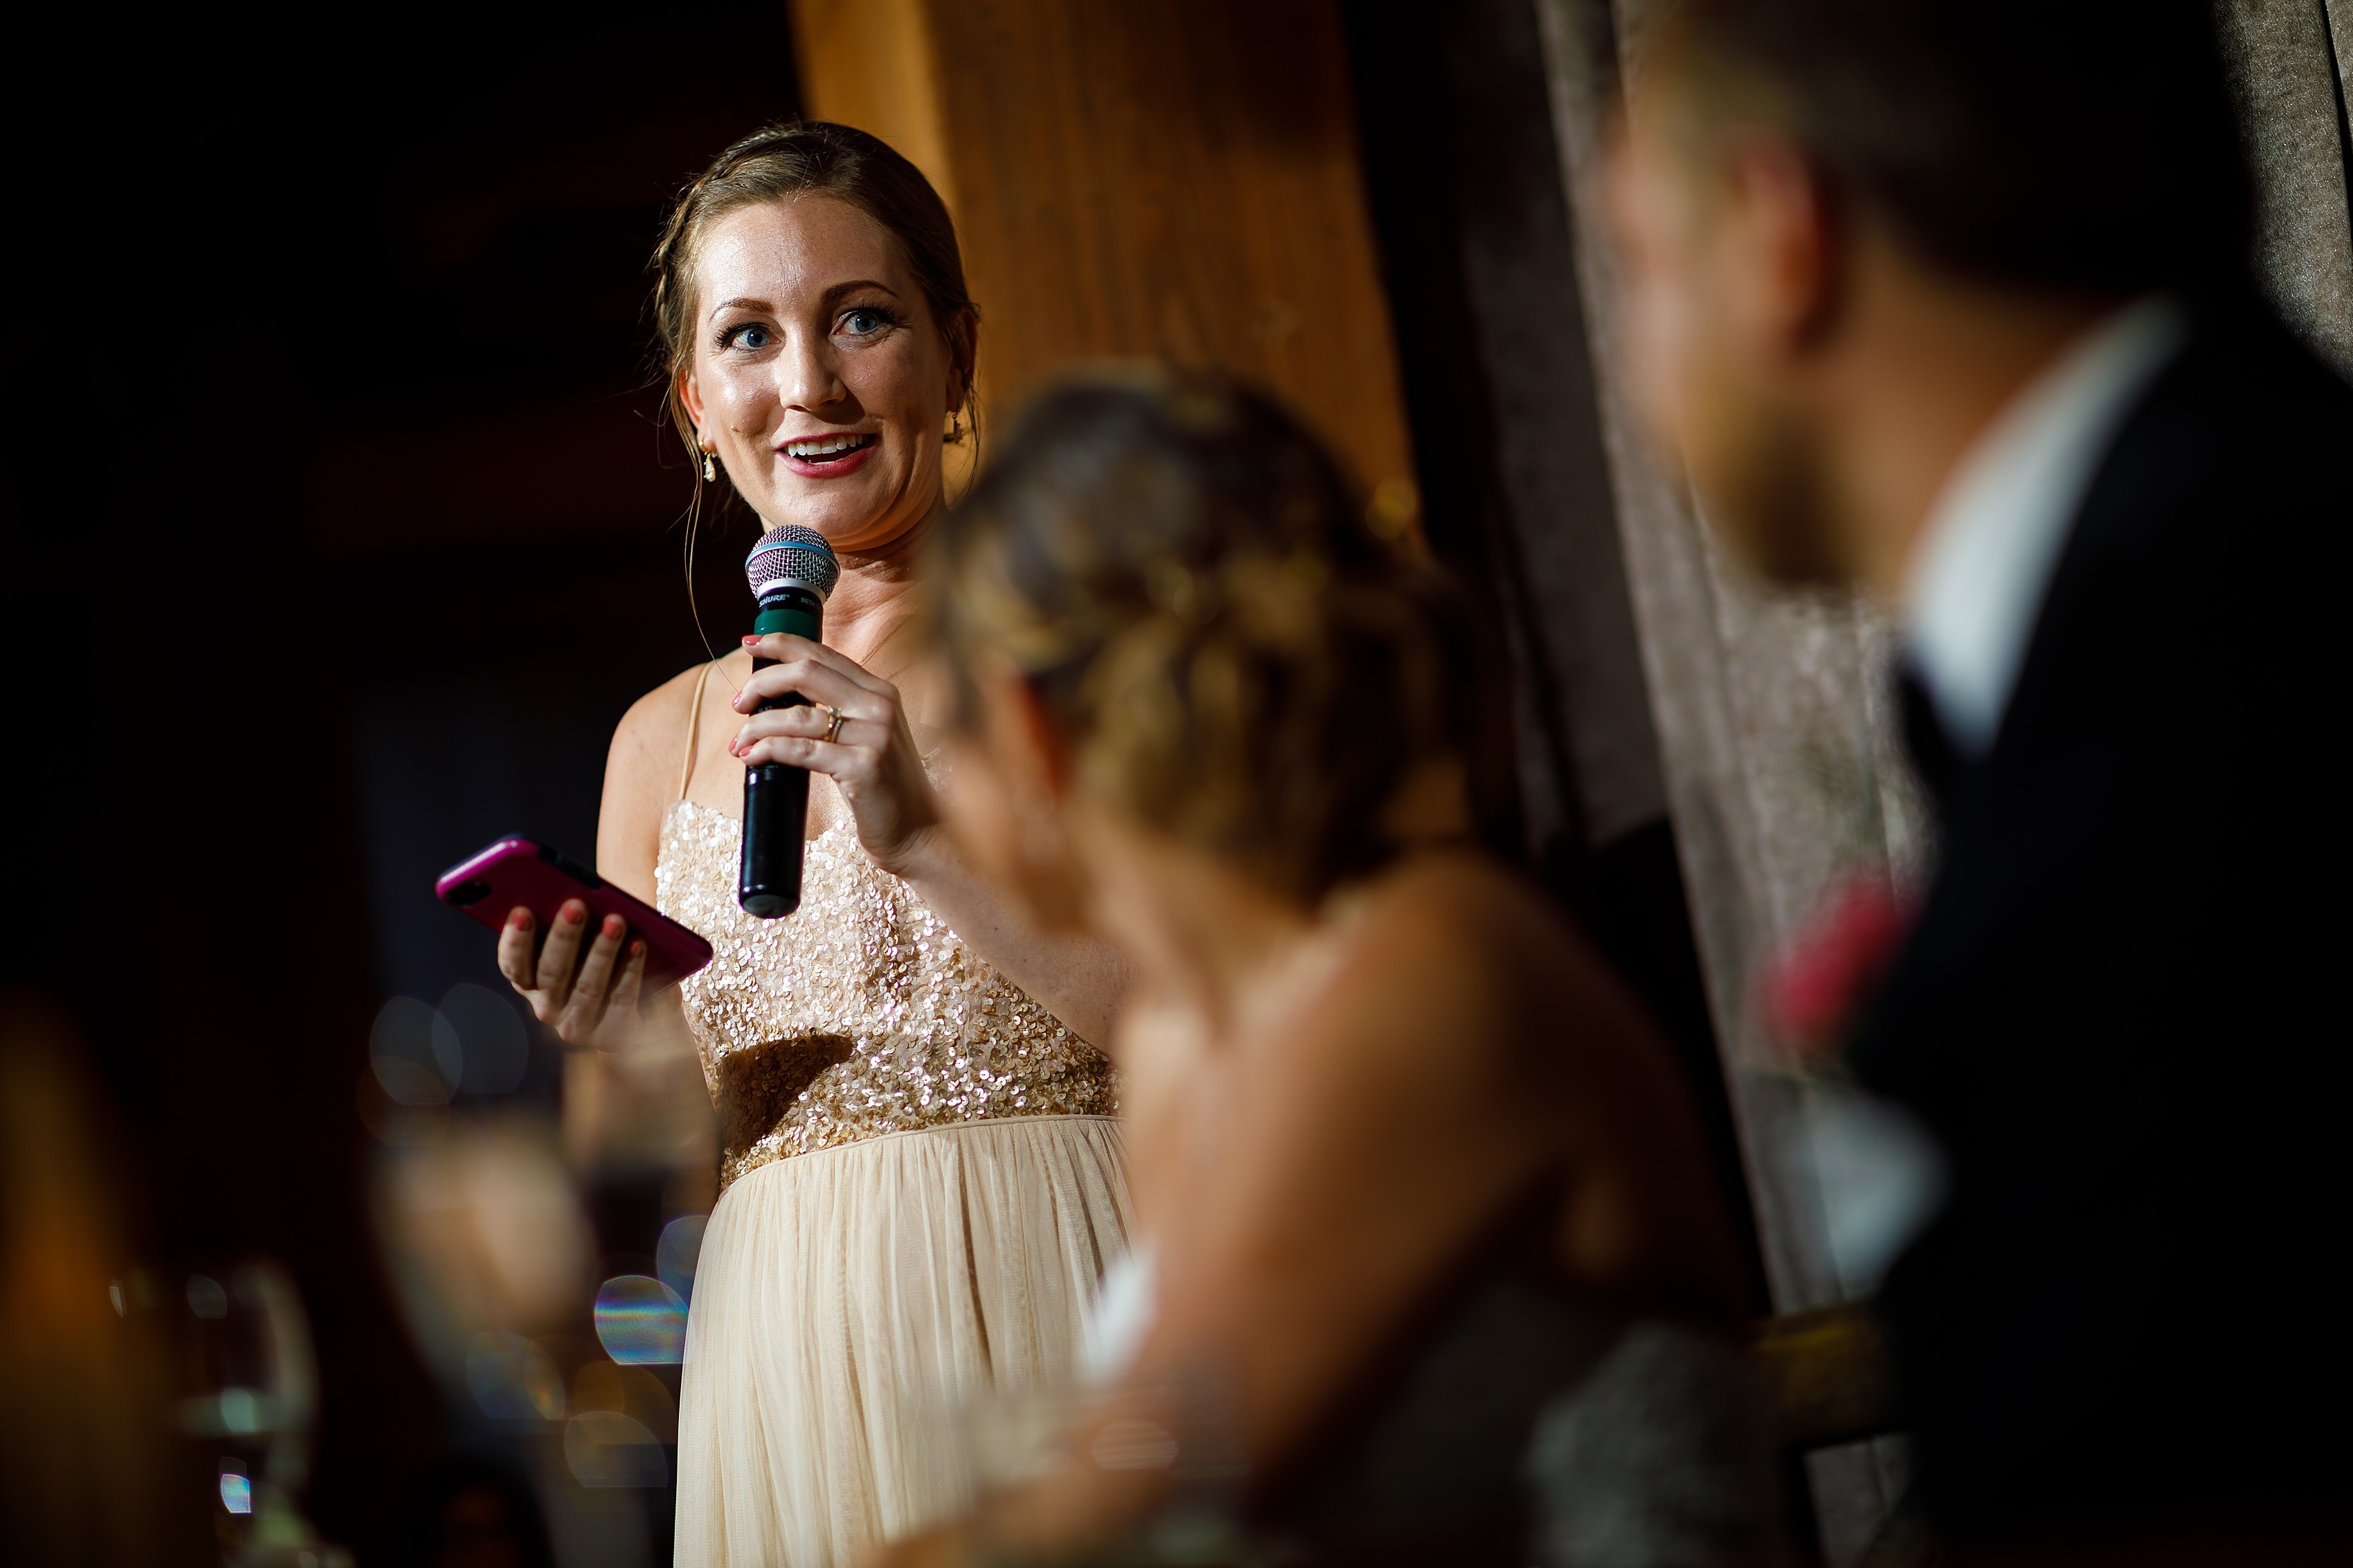 bridesmaid gives toast during wedding reception at Bridgeport Art Center Sculpture Garden in Chicago